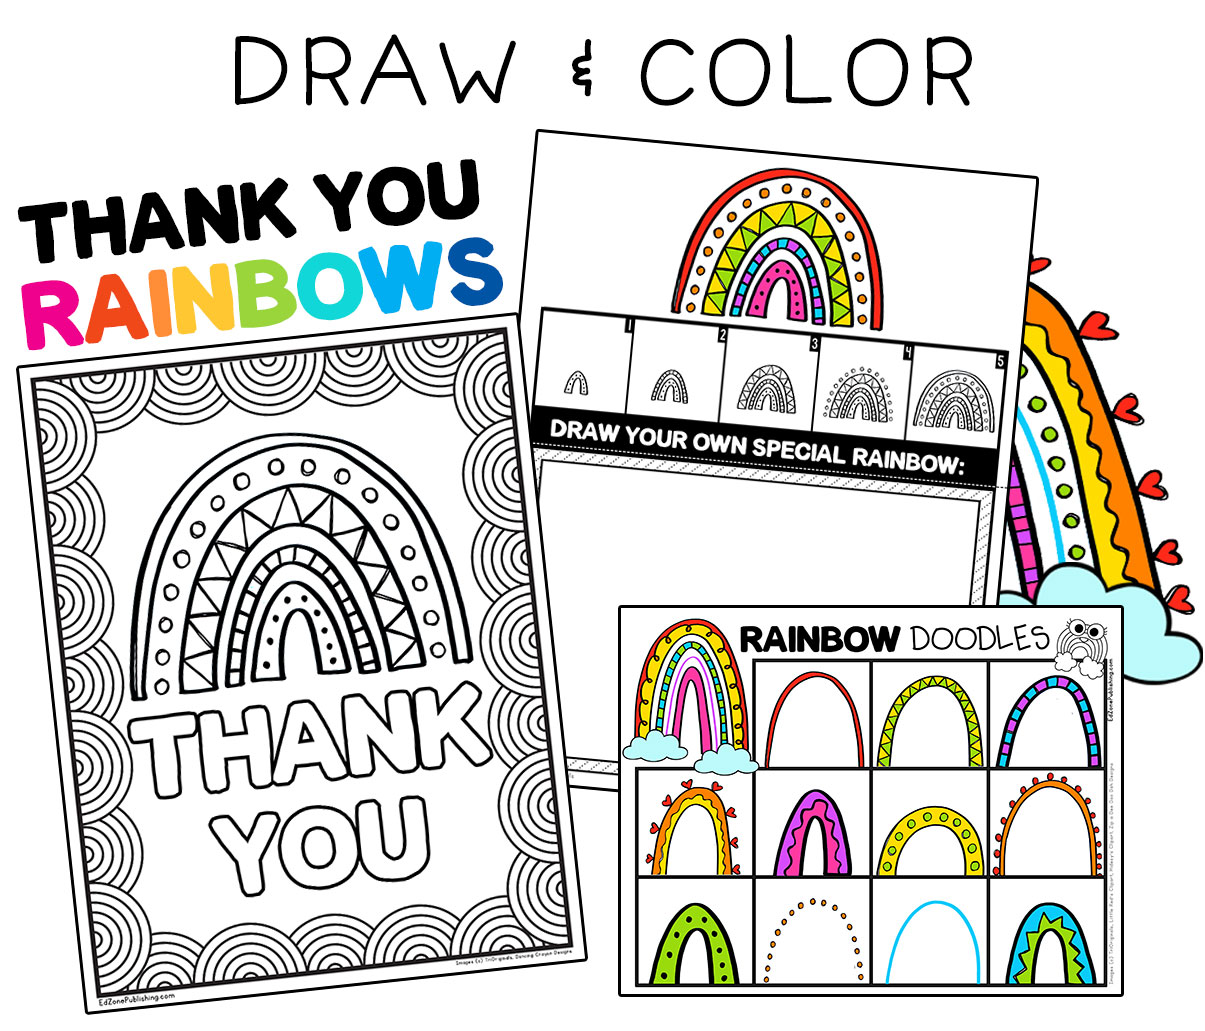 Drawcolorthankyourainbows